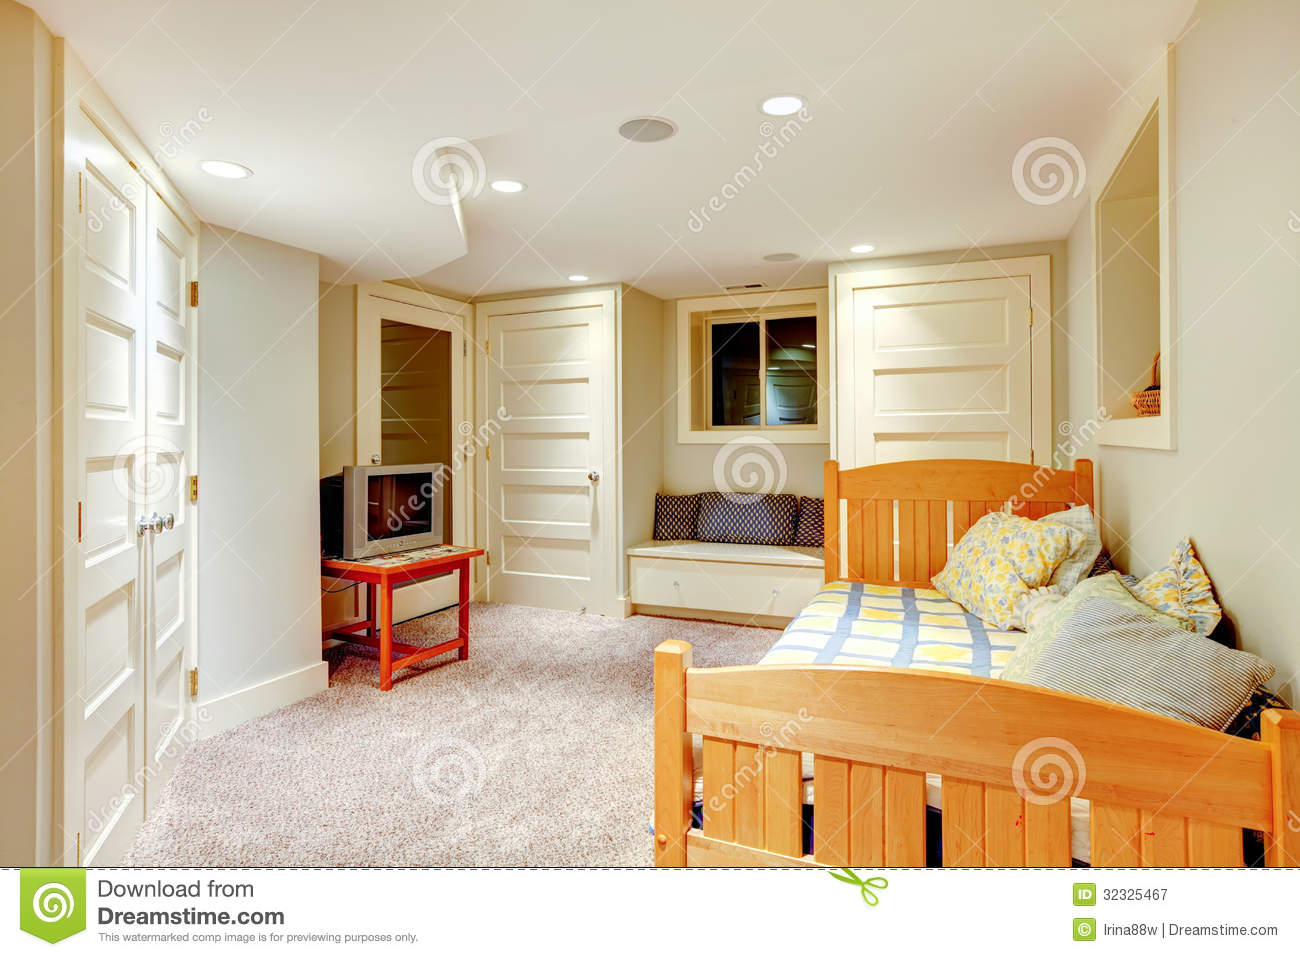 Clean And Bright Basement Bedroom With White Walls And Carpet Royalty